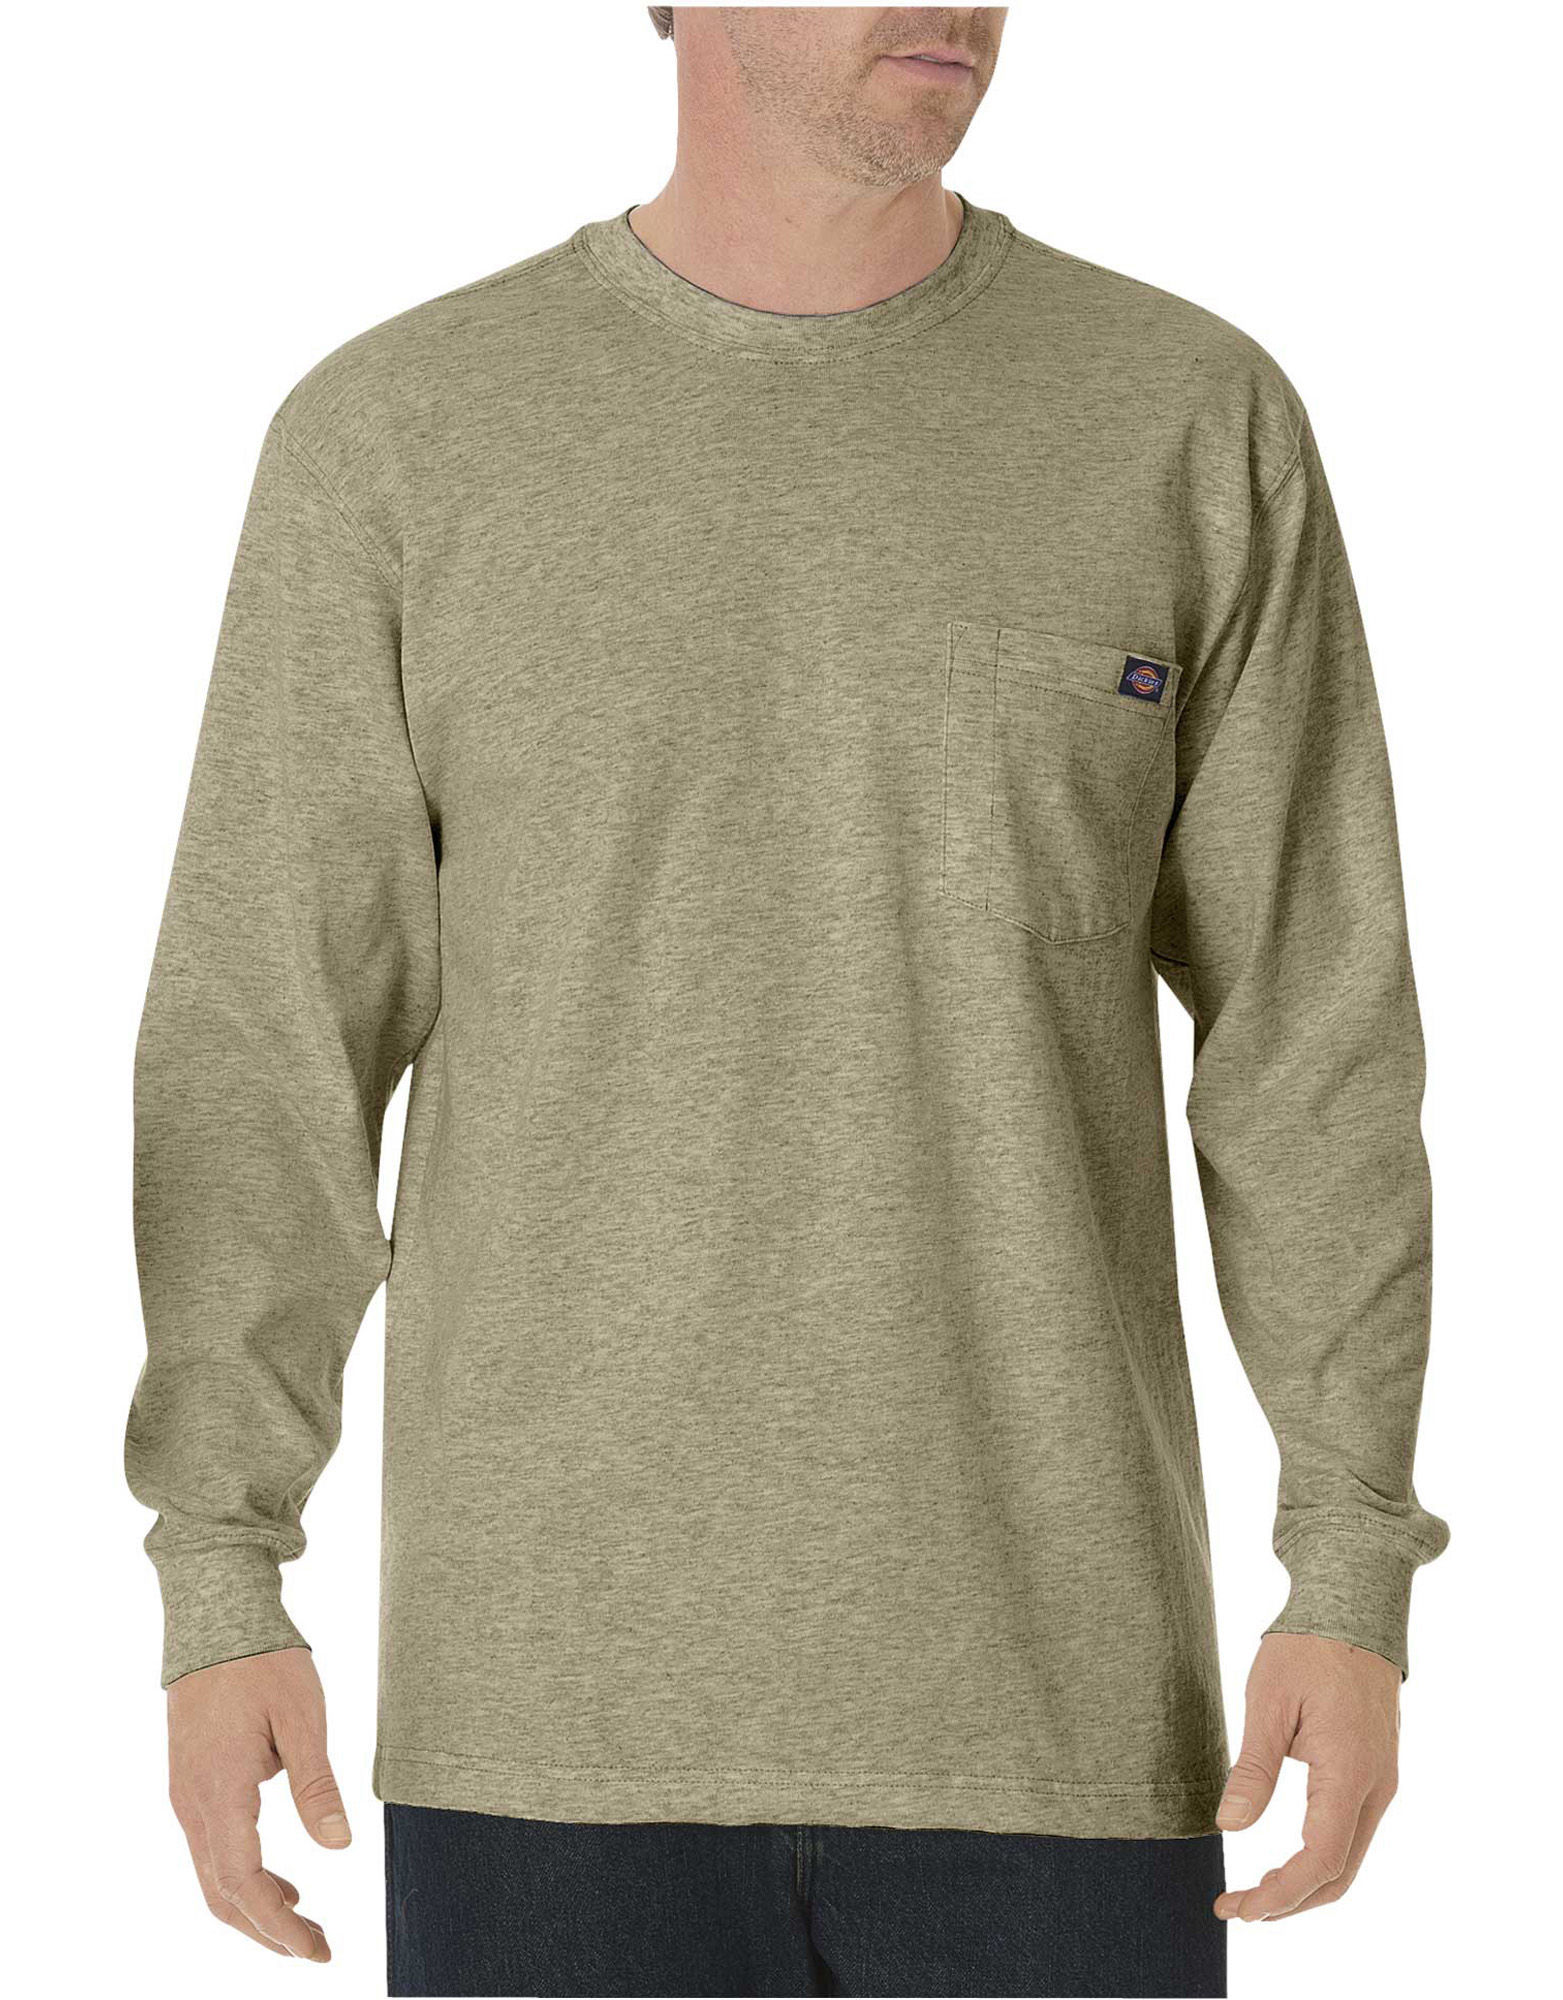 8317fe28 Add to My Lists. Dickies Mens Long Sleeve Heavyweight Crew Neck